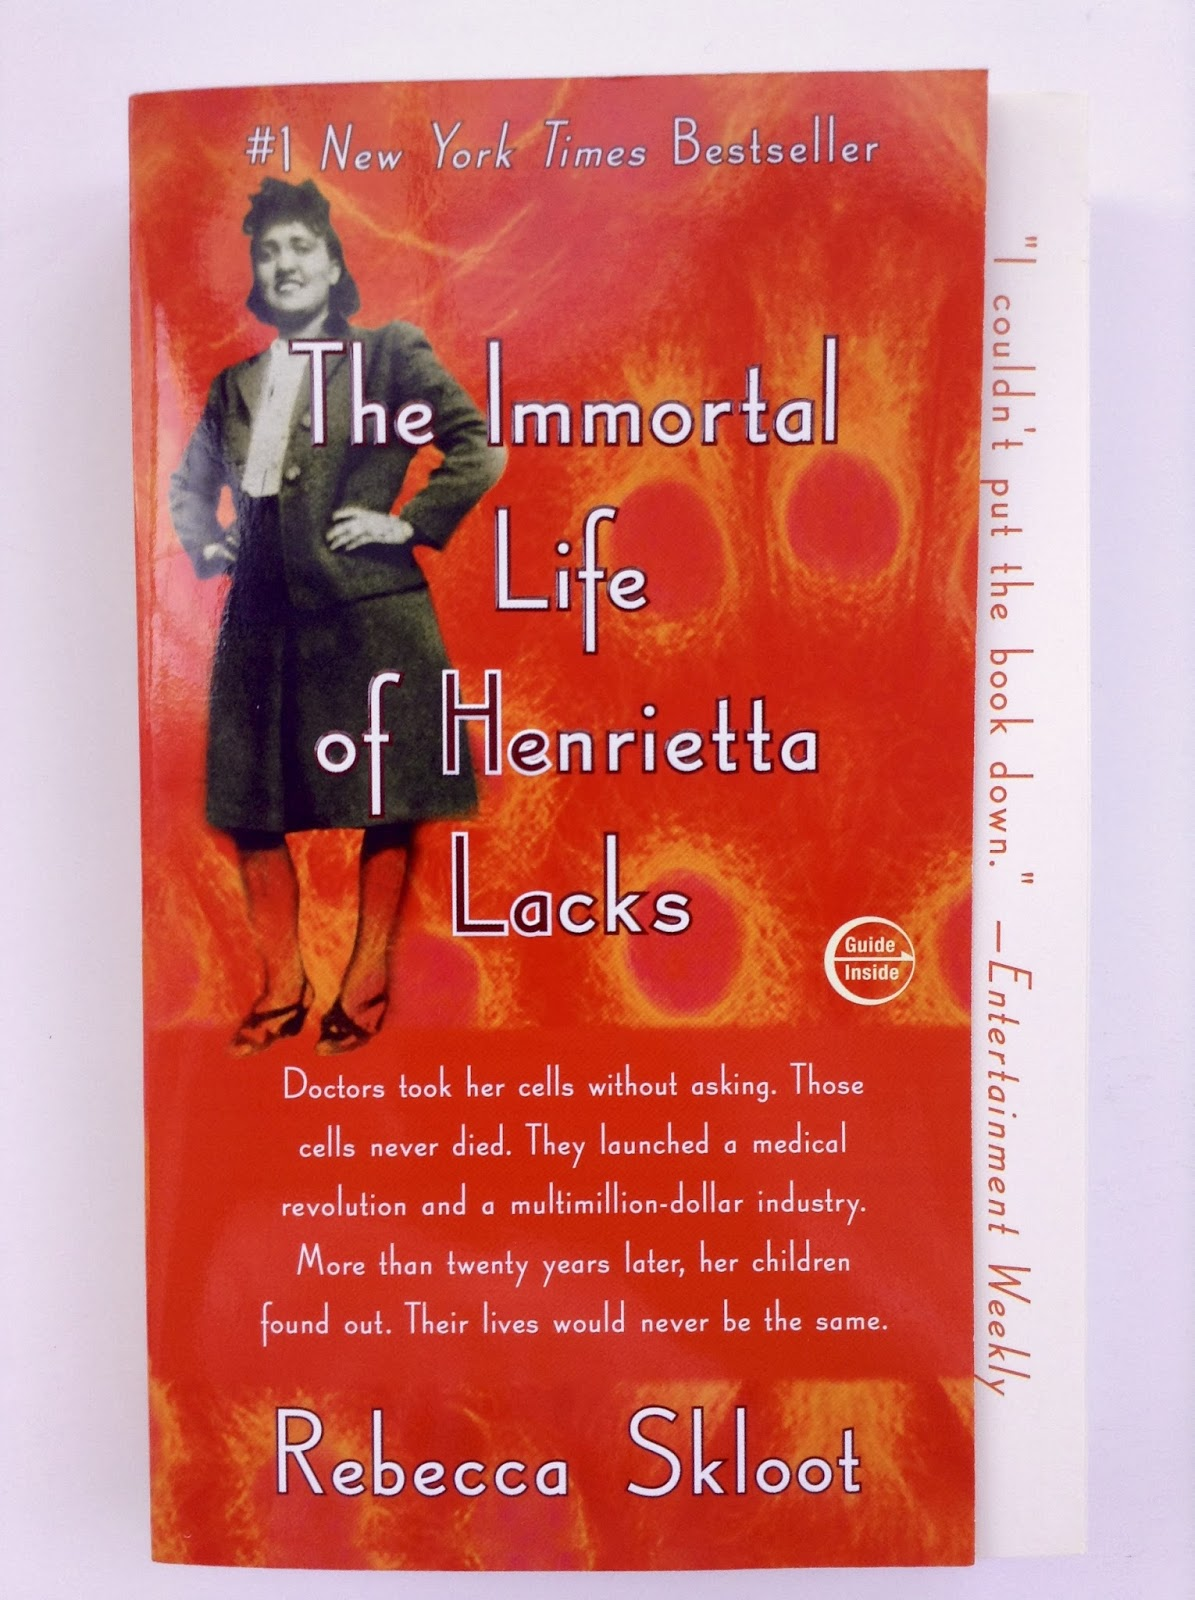 """trust and bonding in the immortal life of henrietta lacks This film casts long-overdue light on the genuinely """"immortal"""" role of a tale of the immortal life of henrietta lacks and the family's — trust."""